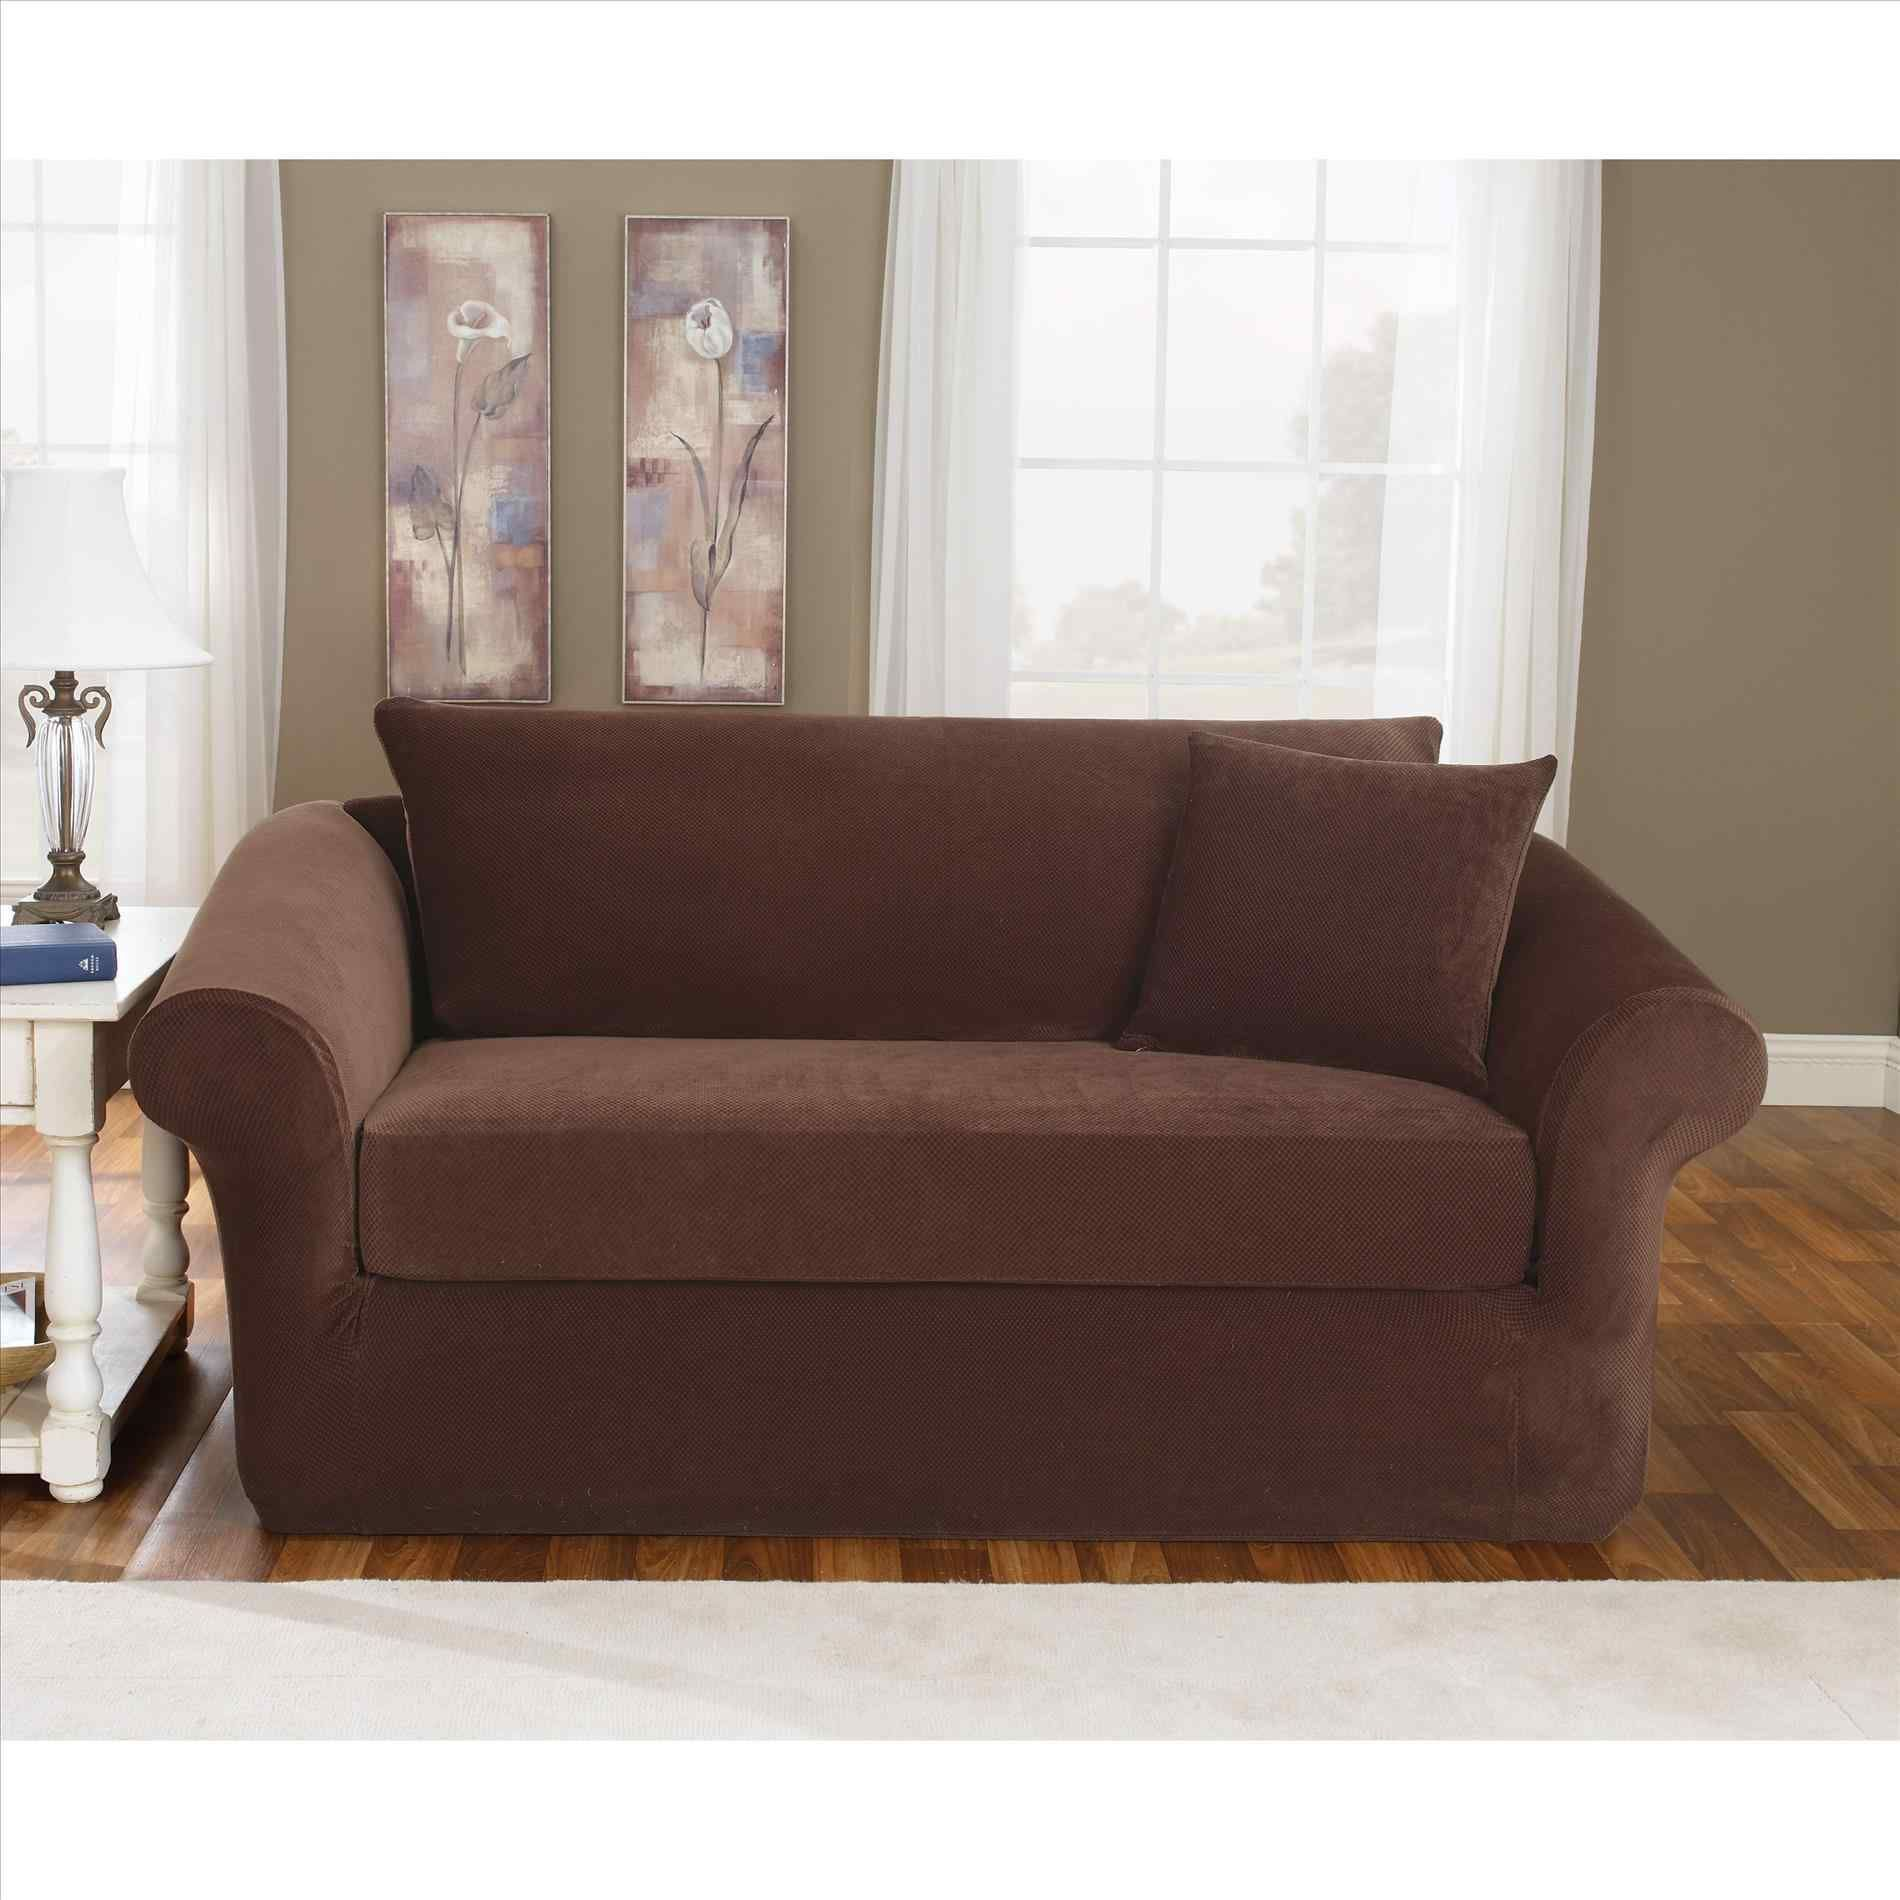 Sleeper Sofa Slipcover How To Make Your Looks Beautiful With Serta Relaxed Duck Piece Box